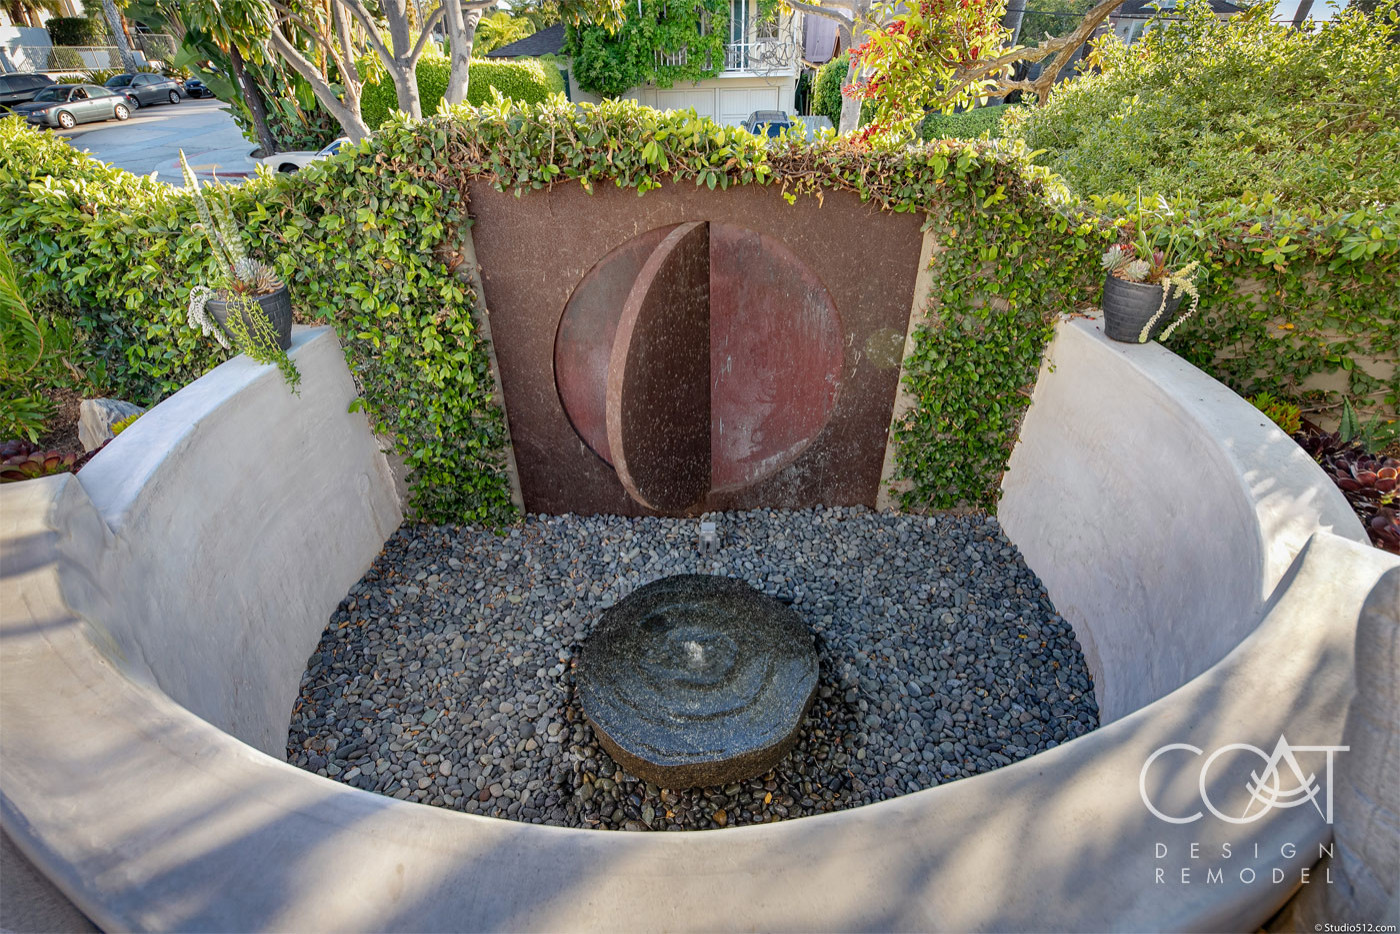 Water Feature and Art Sculpture